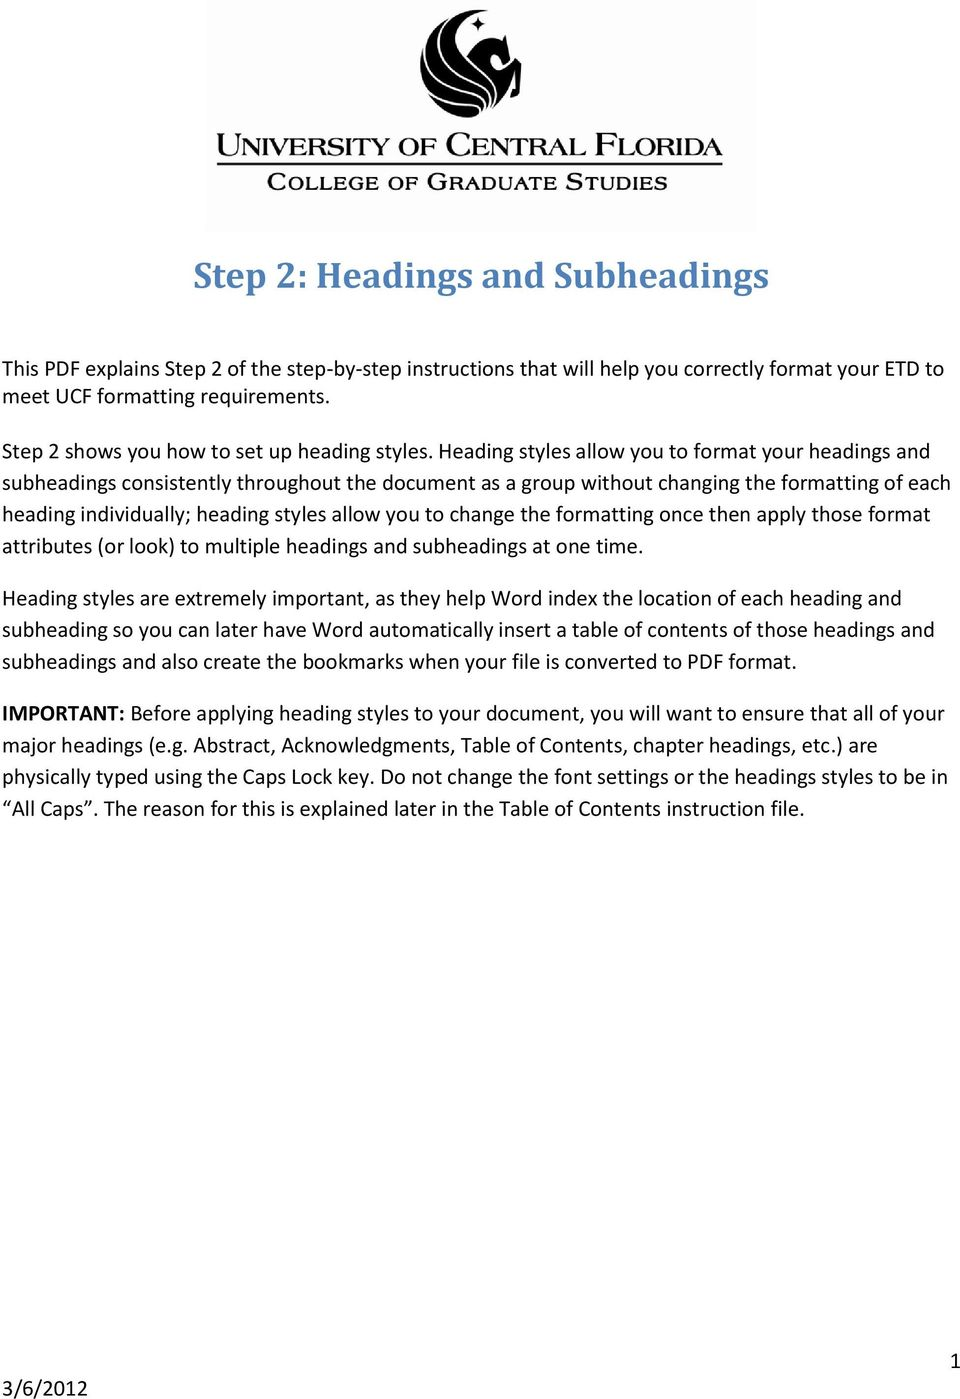 Heading styles allow you to format your headings and subheadings consistently throughout the document as a group without changing the formatting of each heading individually; heading styles allow you